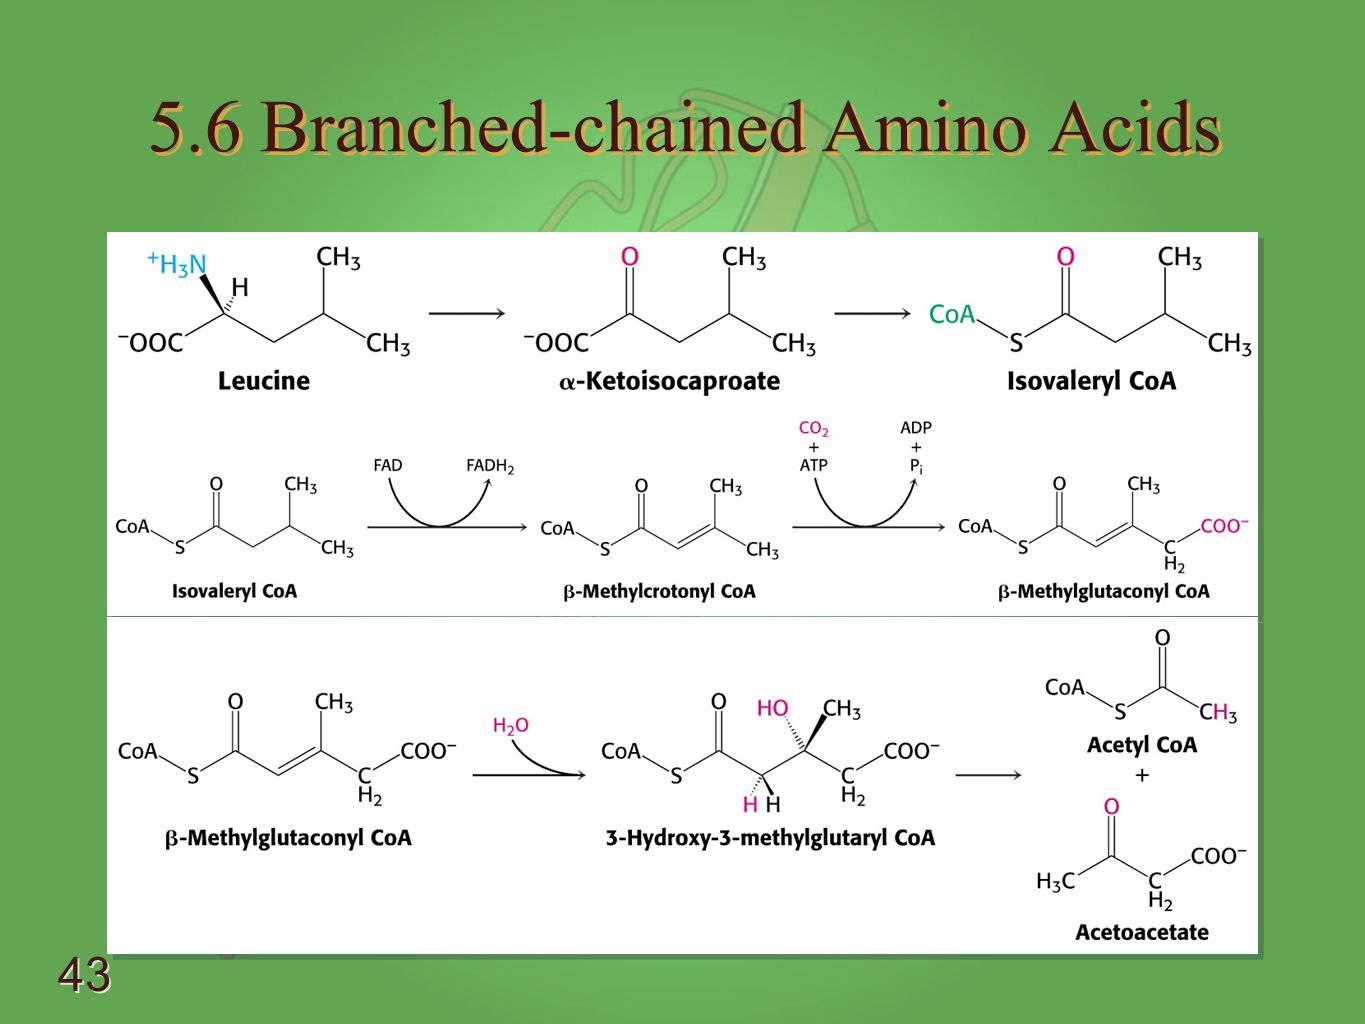 5.6 Branched-chained Amino Acids